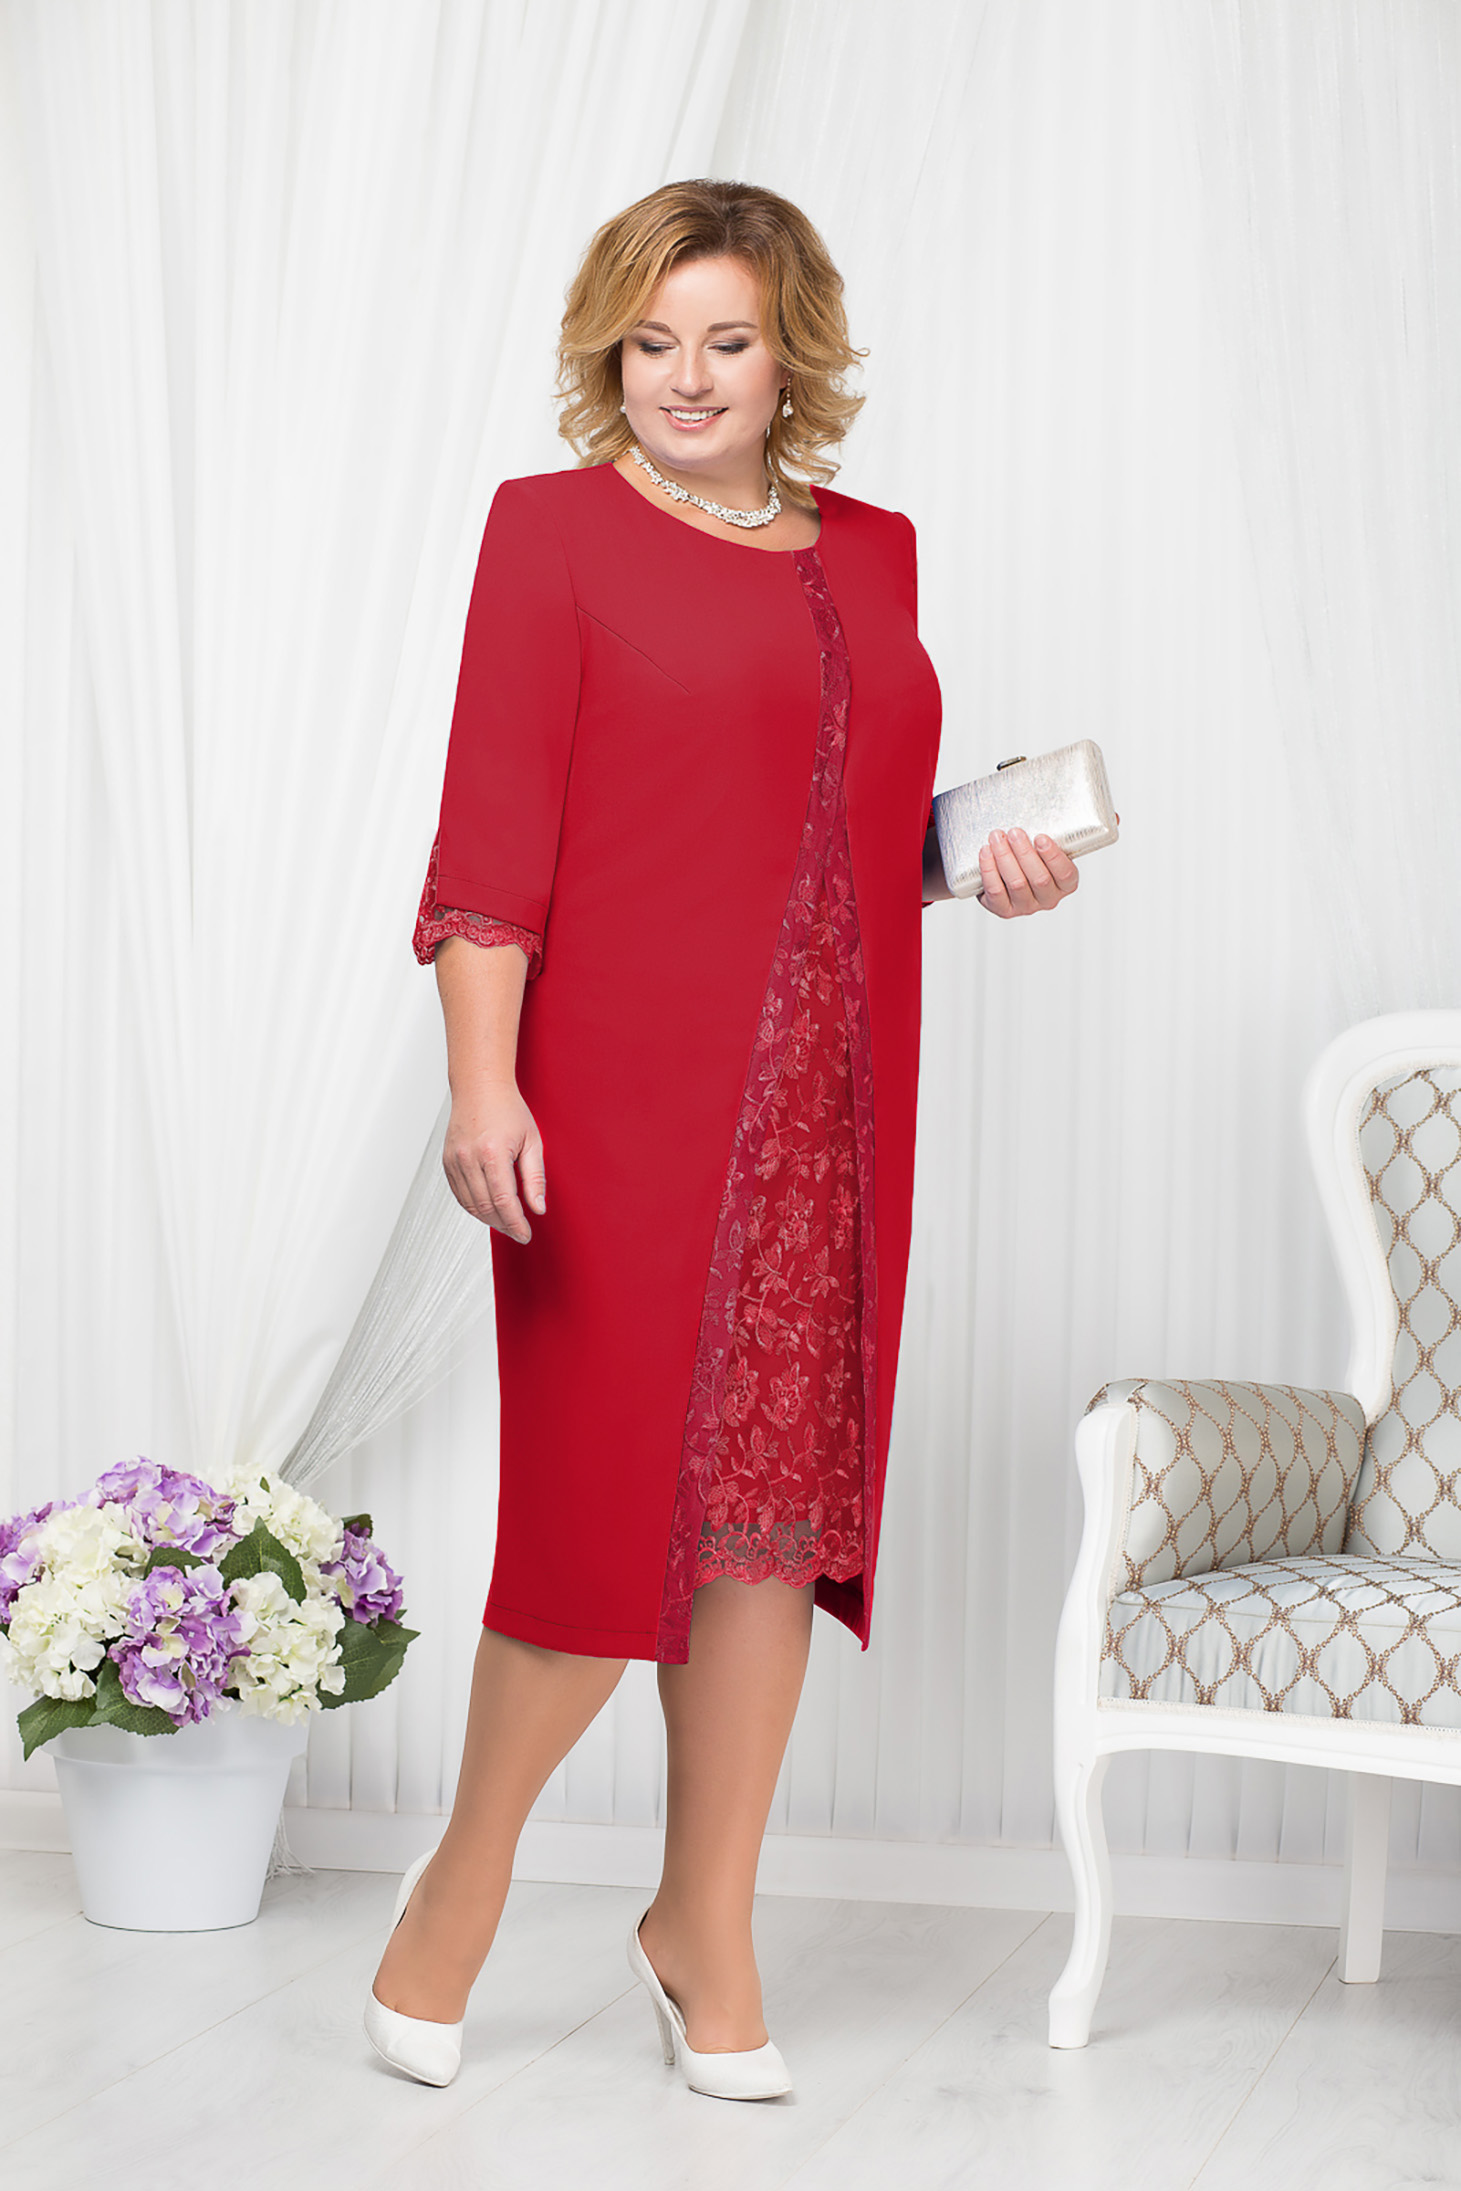 Red dress occasional elegant straight midi with padded shoulders with embroidery details